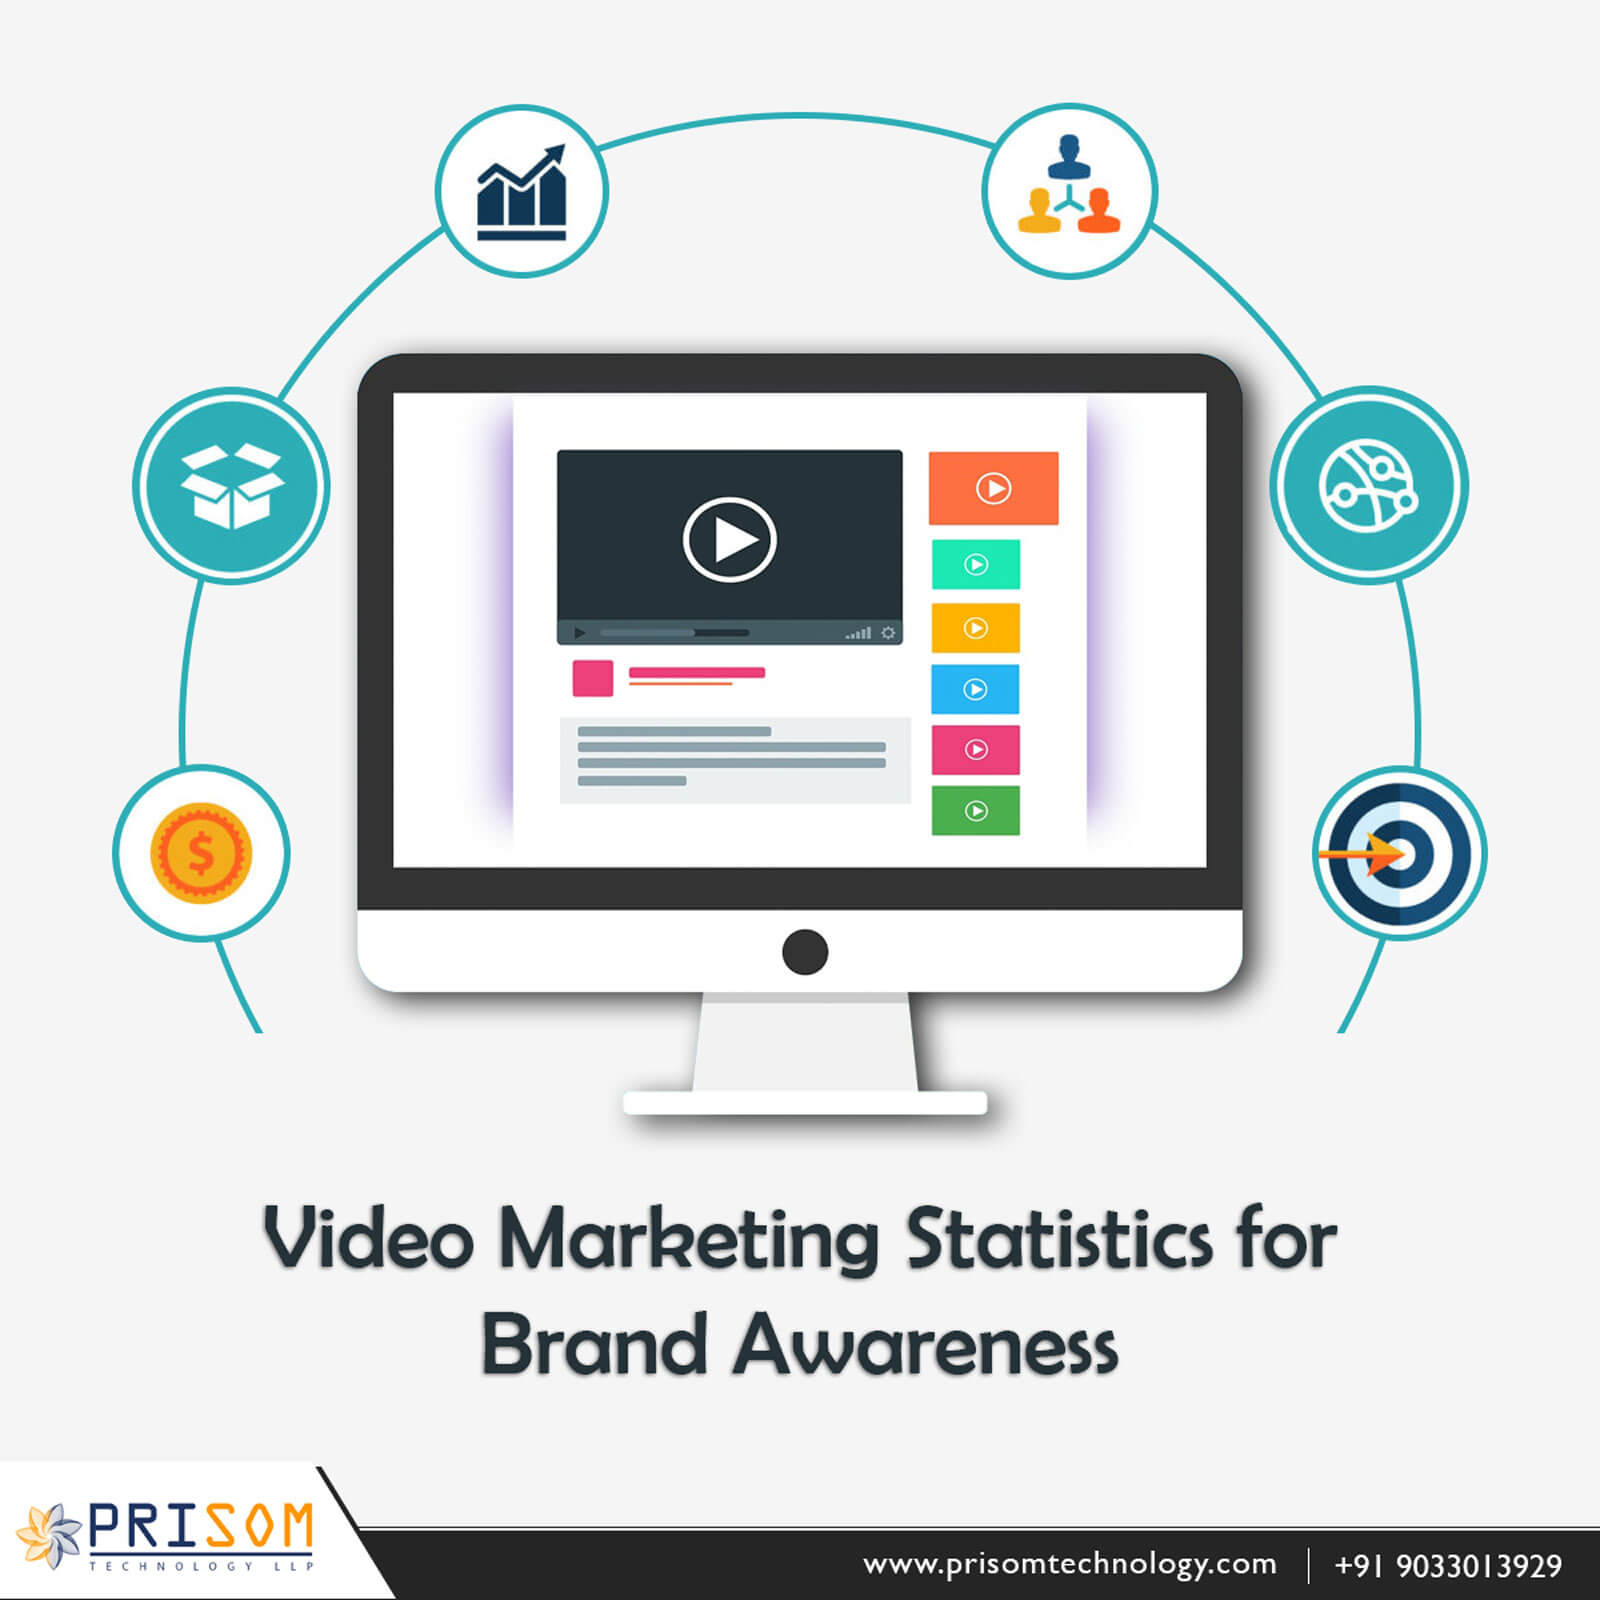 Video-Marketing-Statistics-for-Brand-Awareness